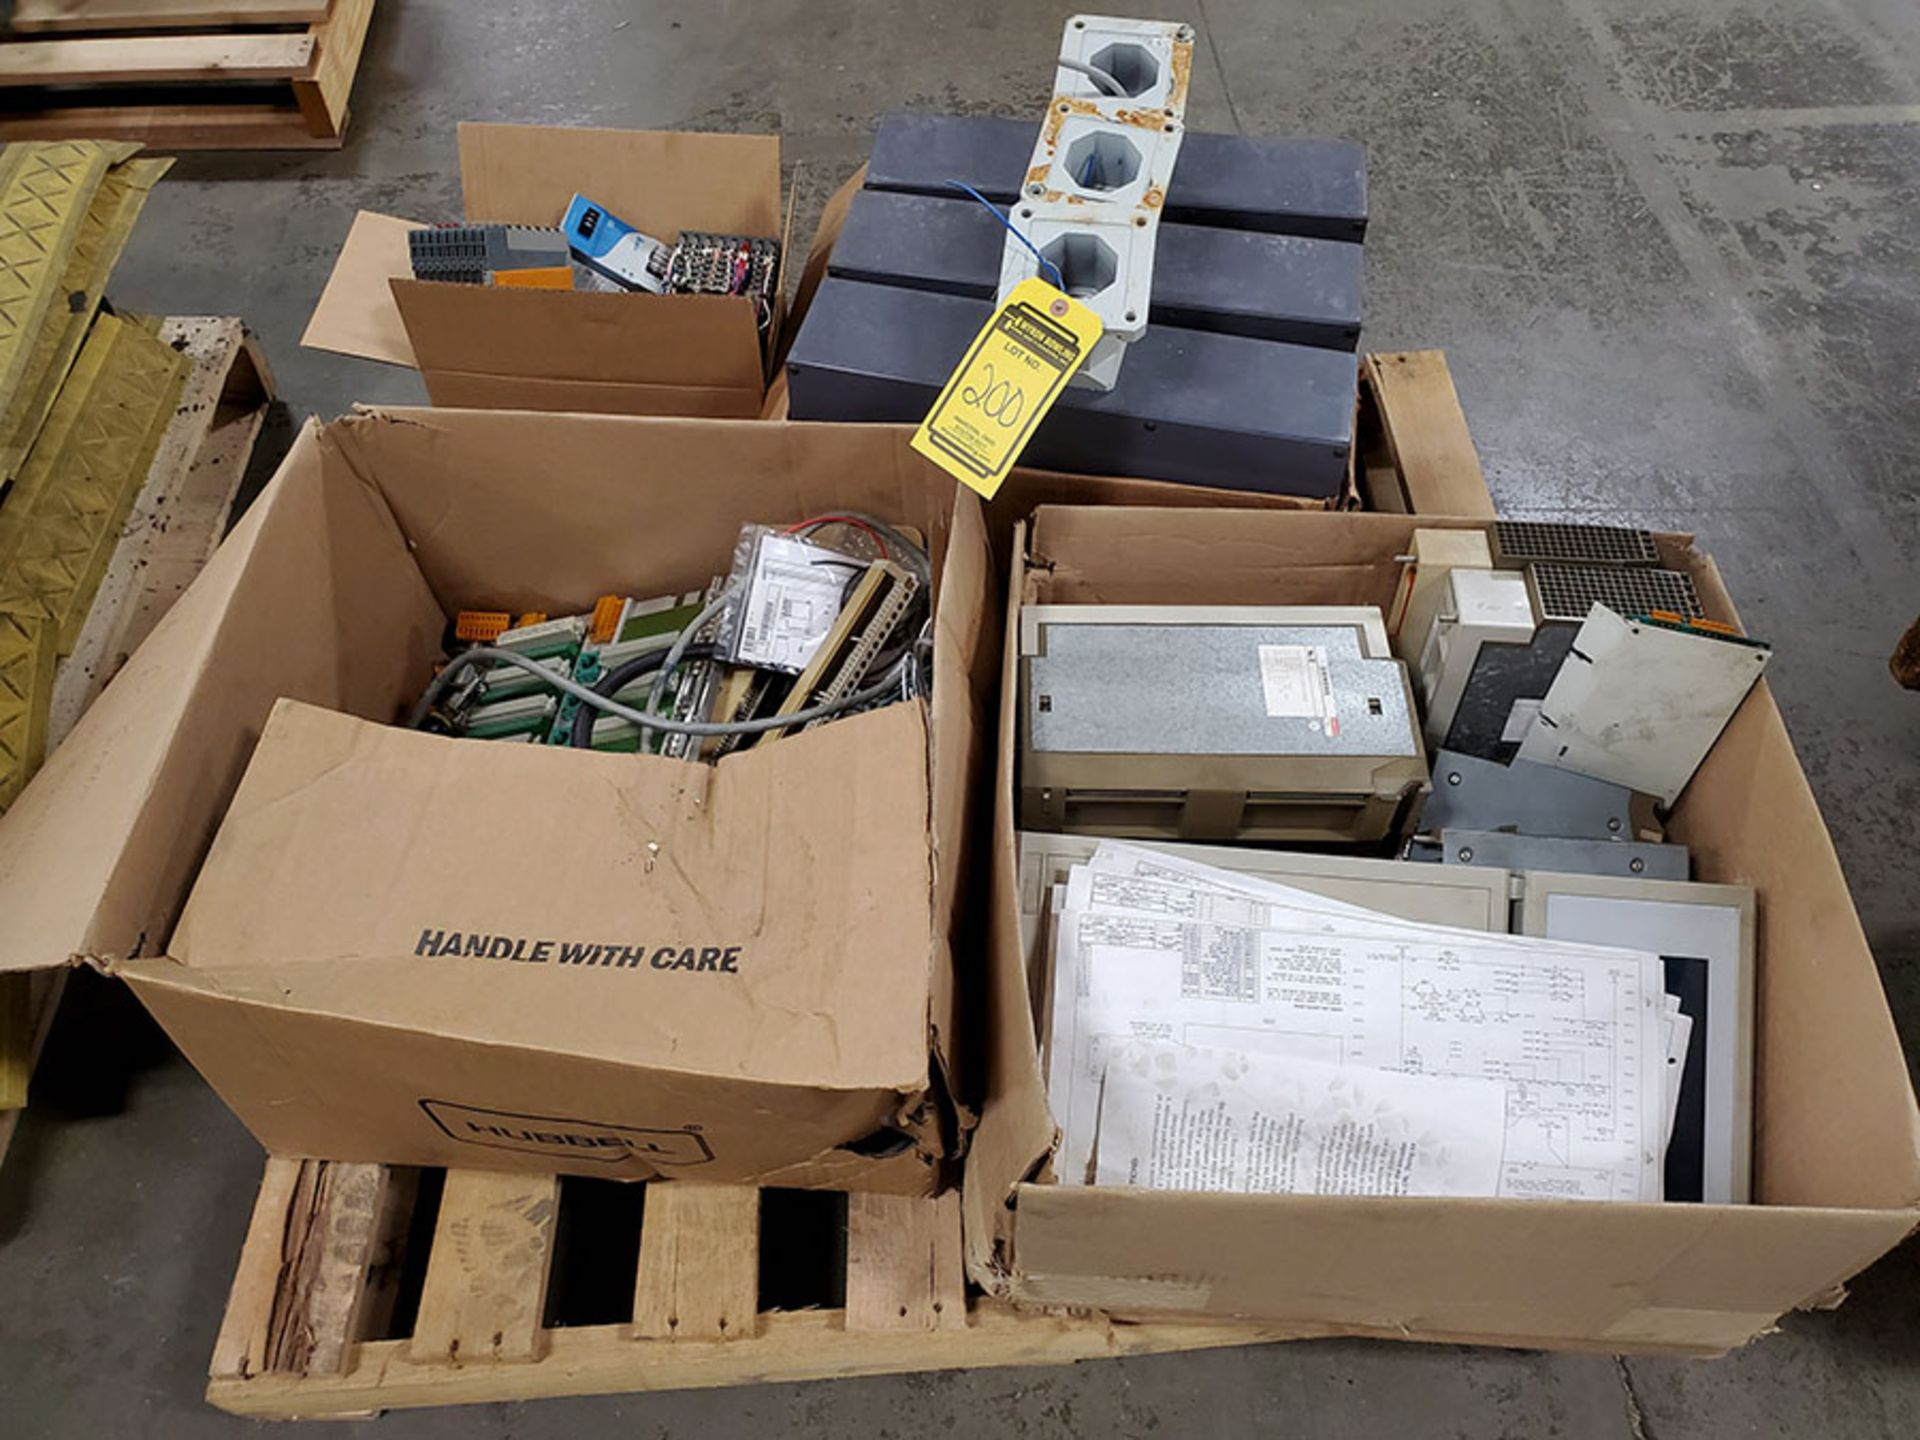 Lot 200 - SKID OF SIEMENS INJECTION MOLDING MACHINE PARTS; MOTHER BOARD, CPU CARD, INPUT & OUTPUT